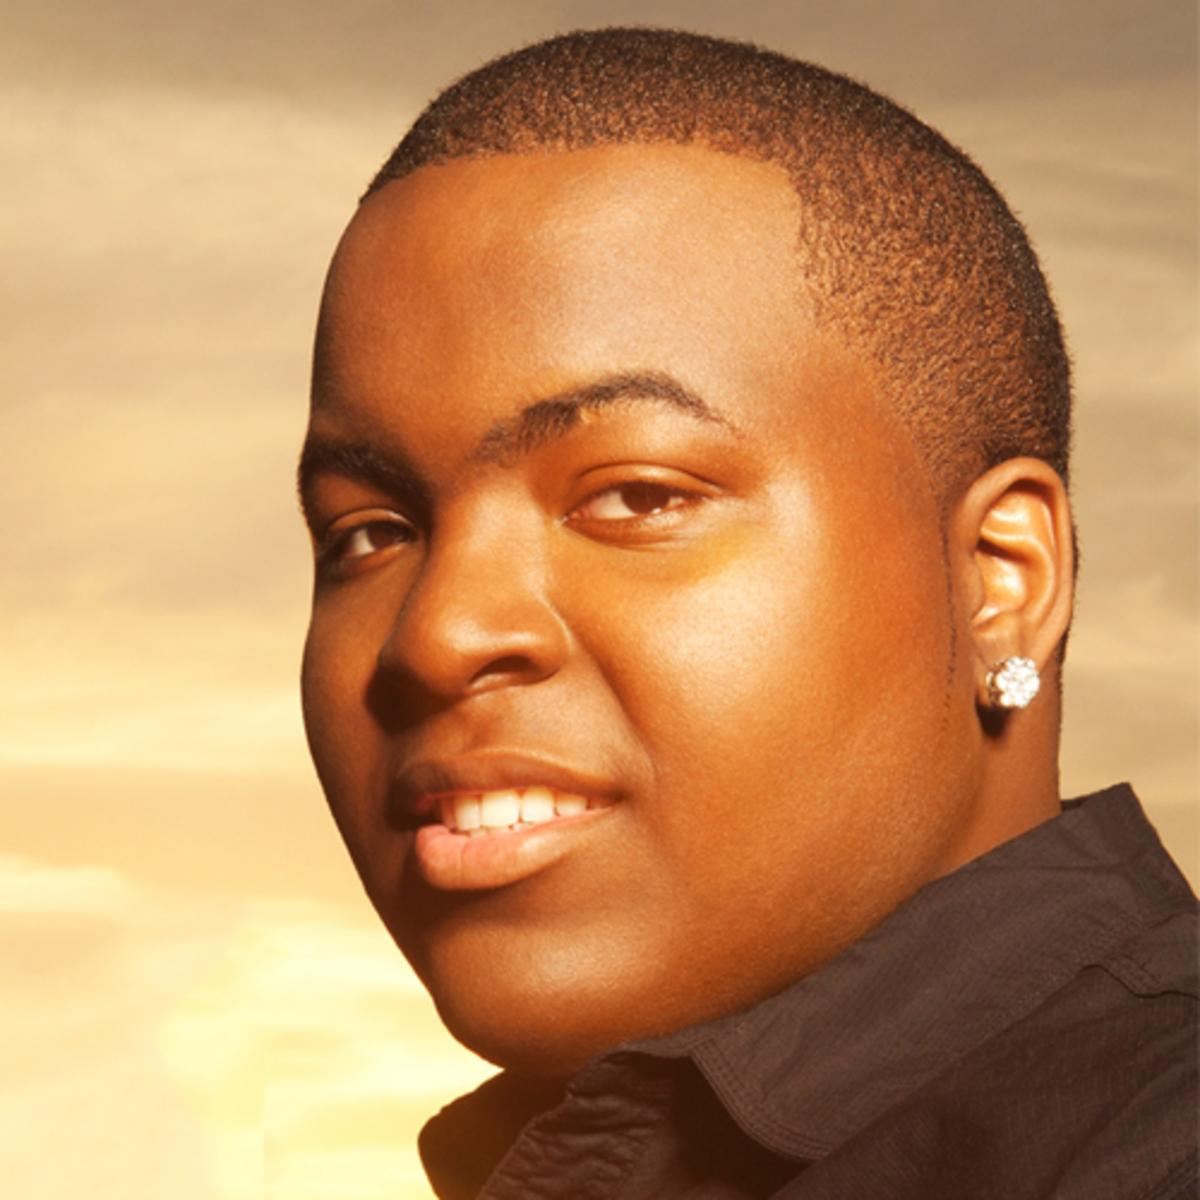 sean kingston why you wanna go free mp3 download